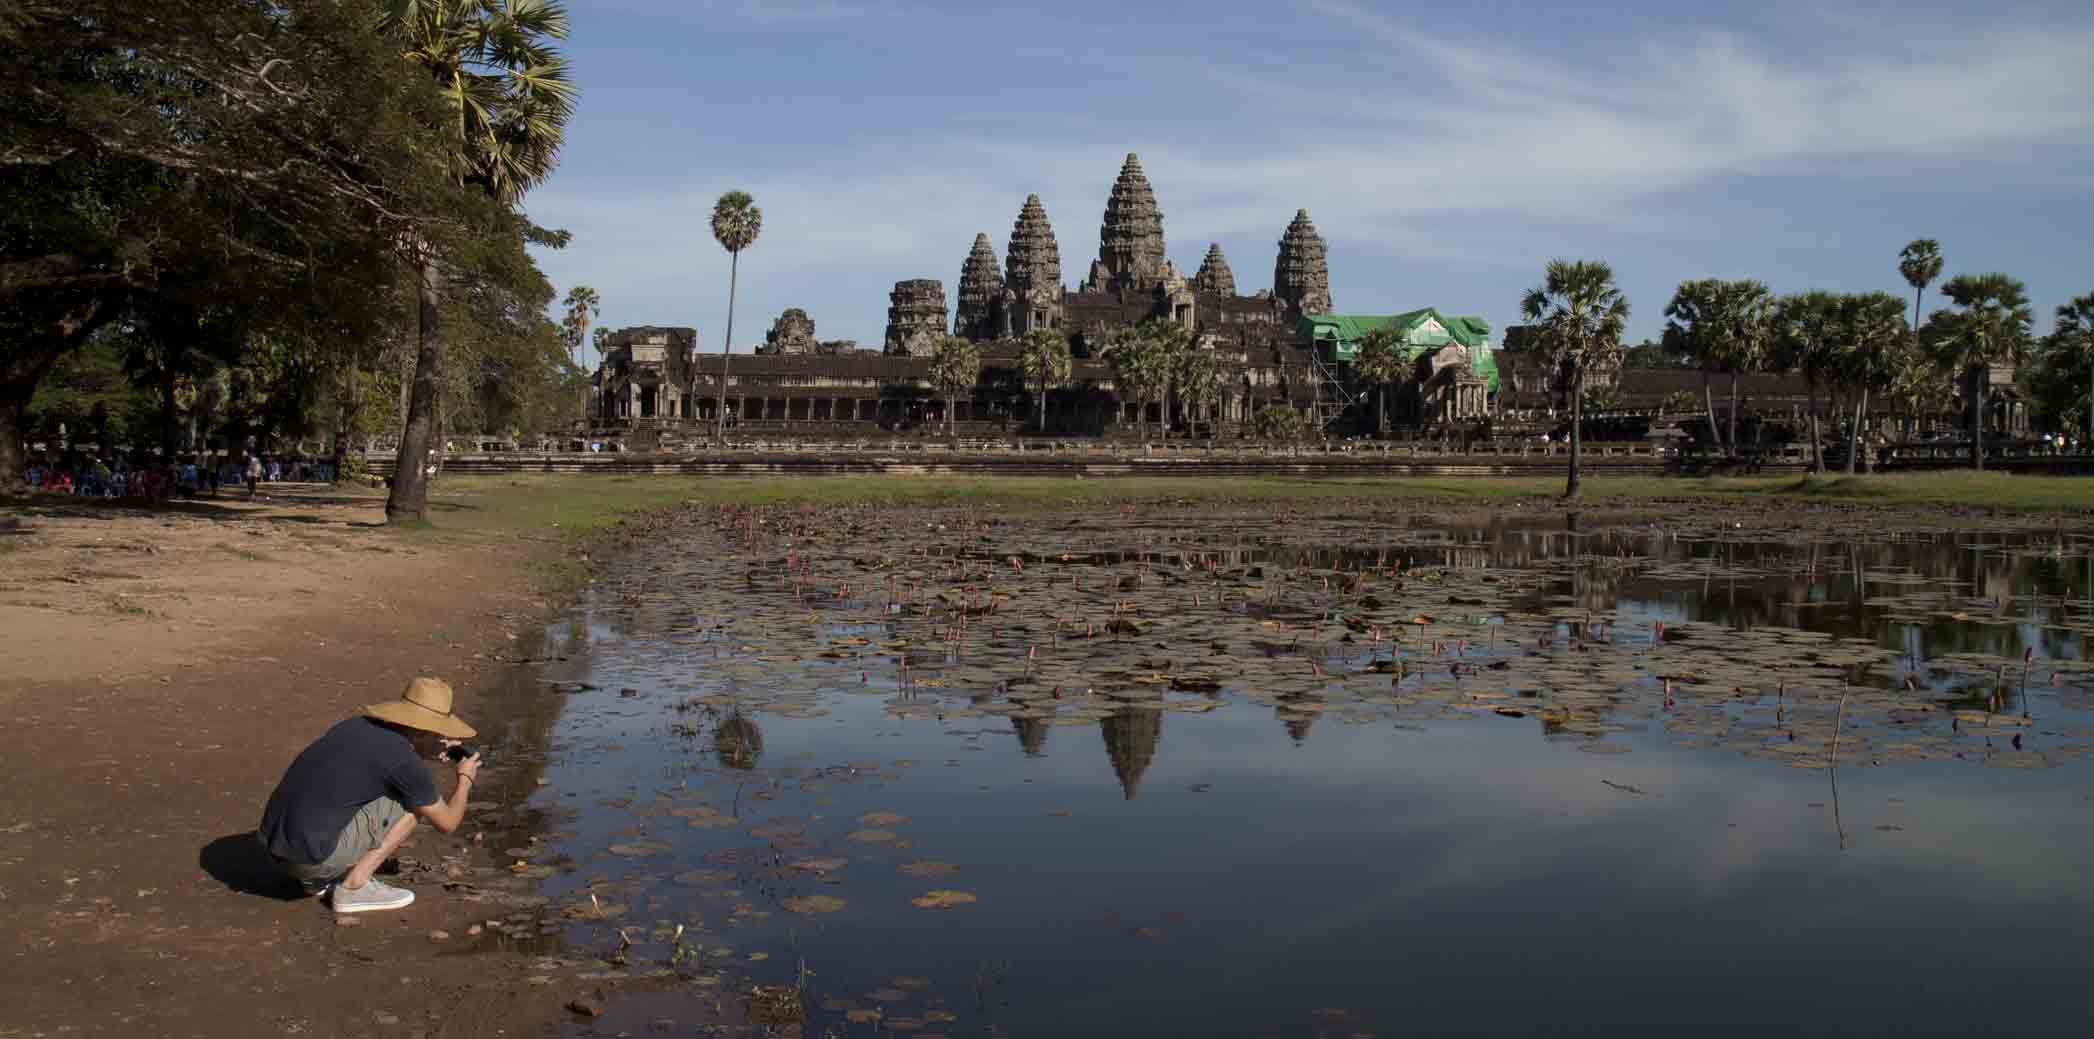 Angkor Wat, not so crowded in the afternoon